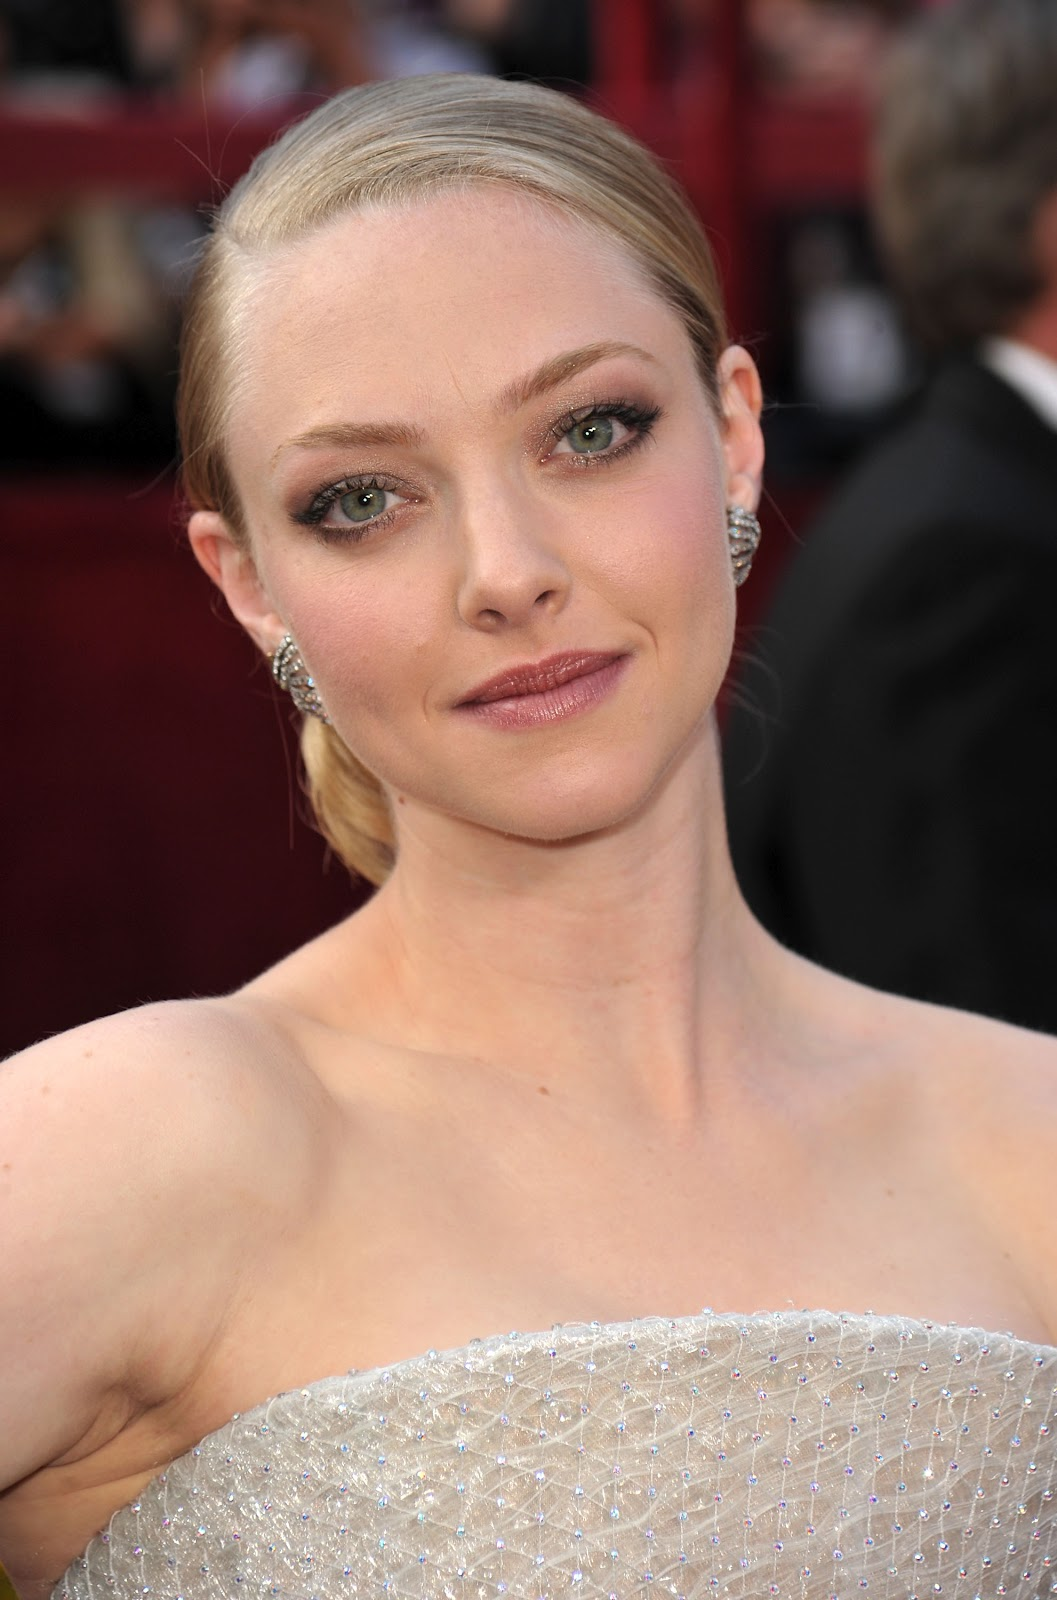 Amanda Seyfried pictur...